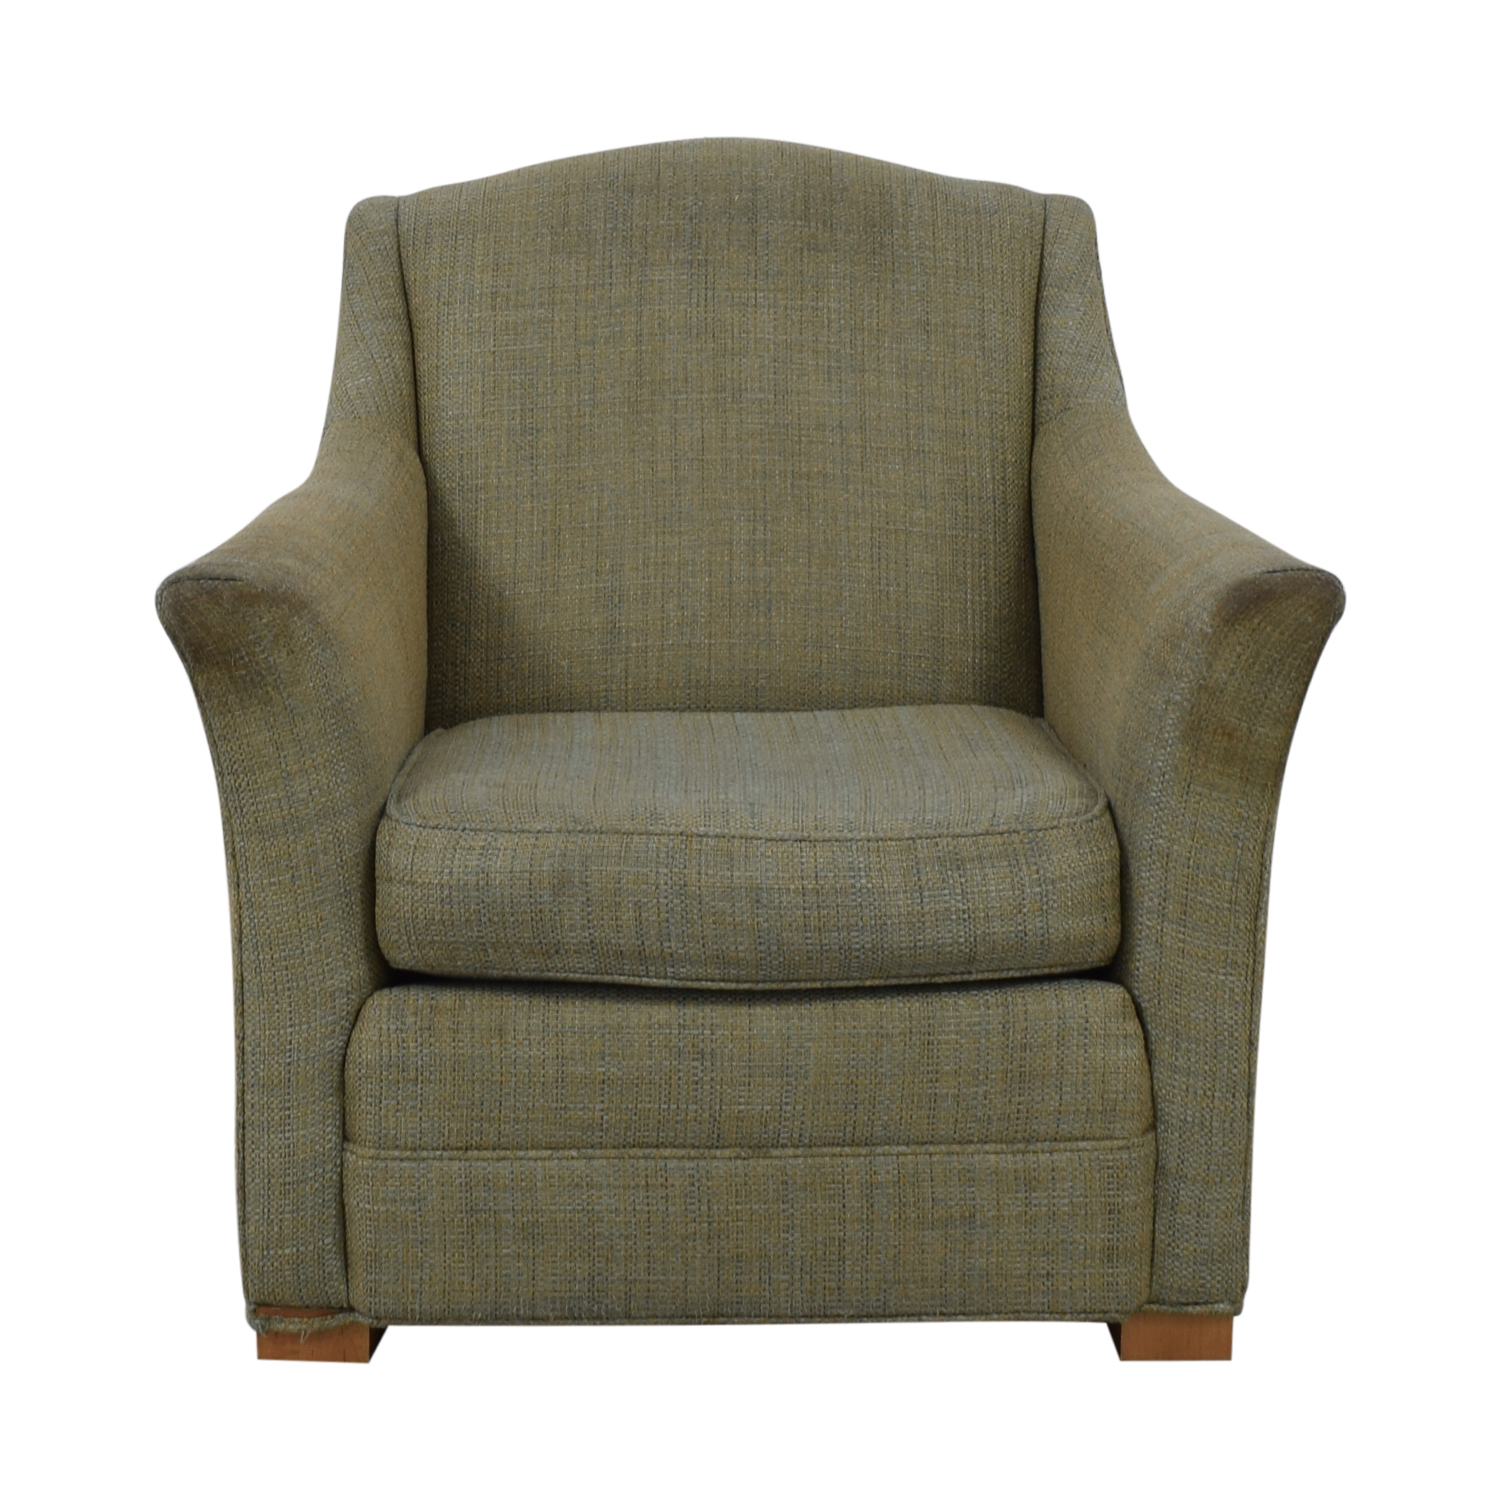 shop Mitchell Gold + Bob Williams Armchair Mitchell Gold + Bob Williams Accent Chairs